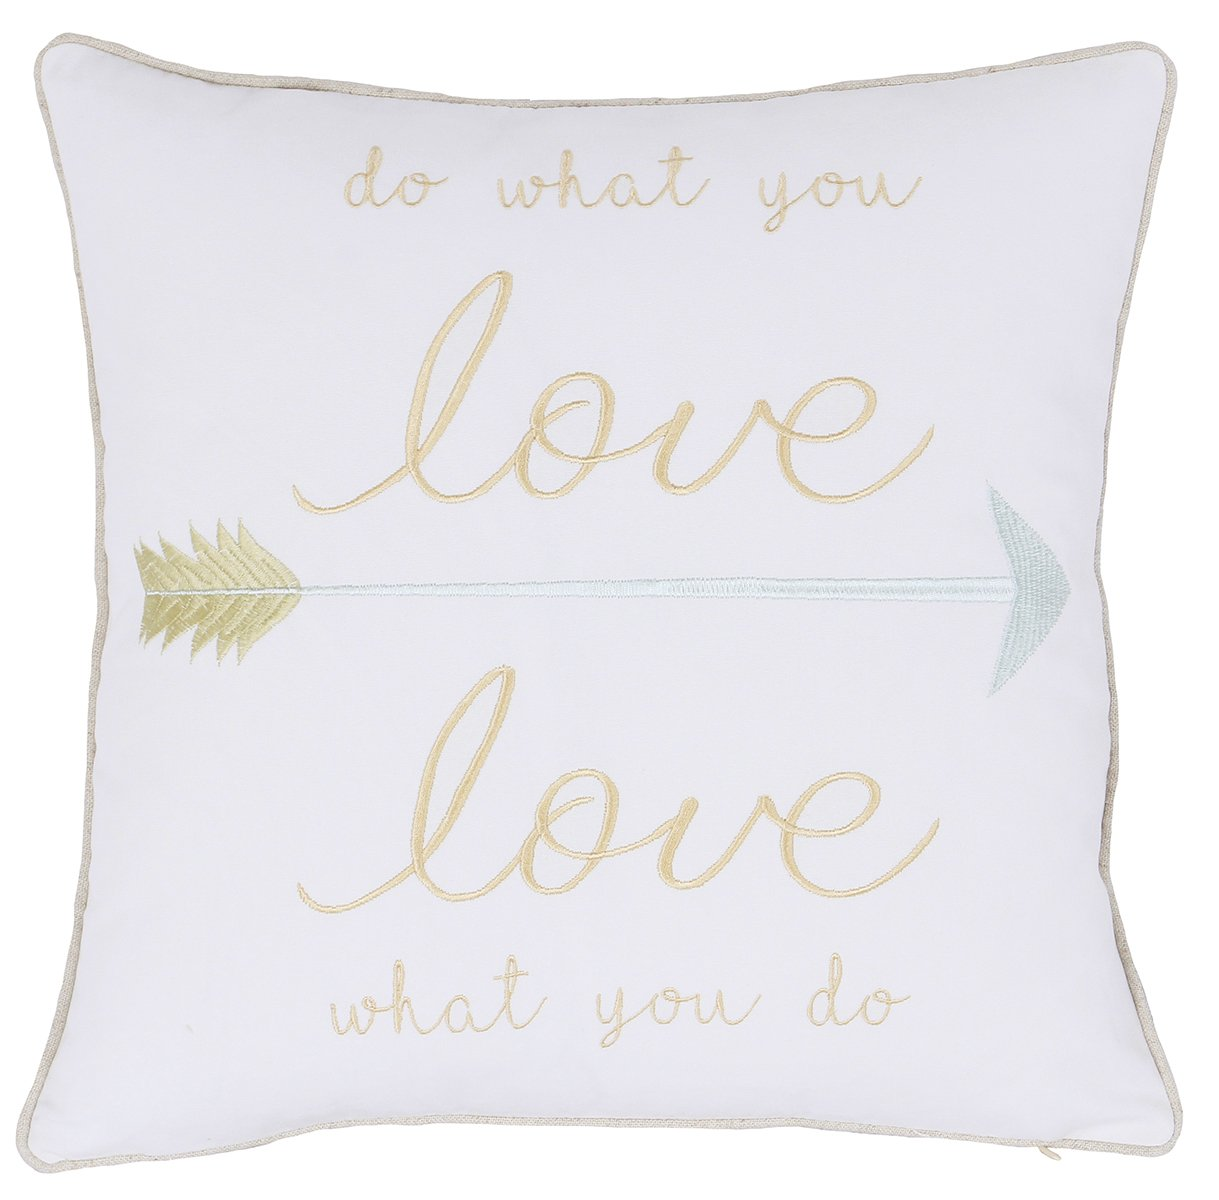 ADecor Pillow Covers Do what you love Pillowcase Embroidered Pillow cover Decorative Pillow Standard Cushion Cover Gift Teen Decor Boys Girls Pillowcovers P325 (18X18, Do what you Love)